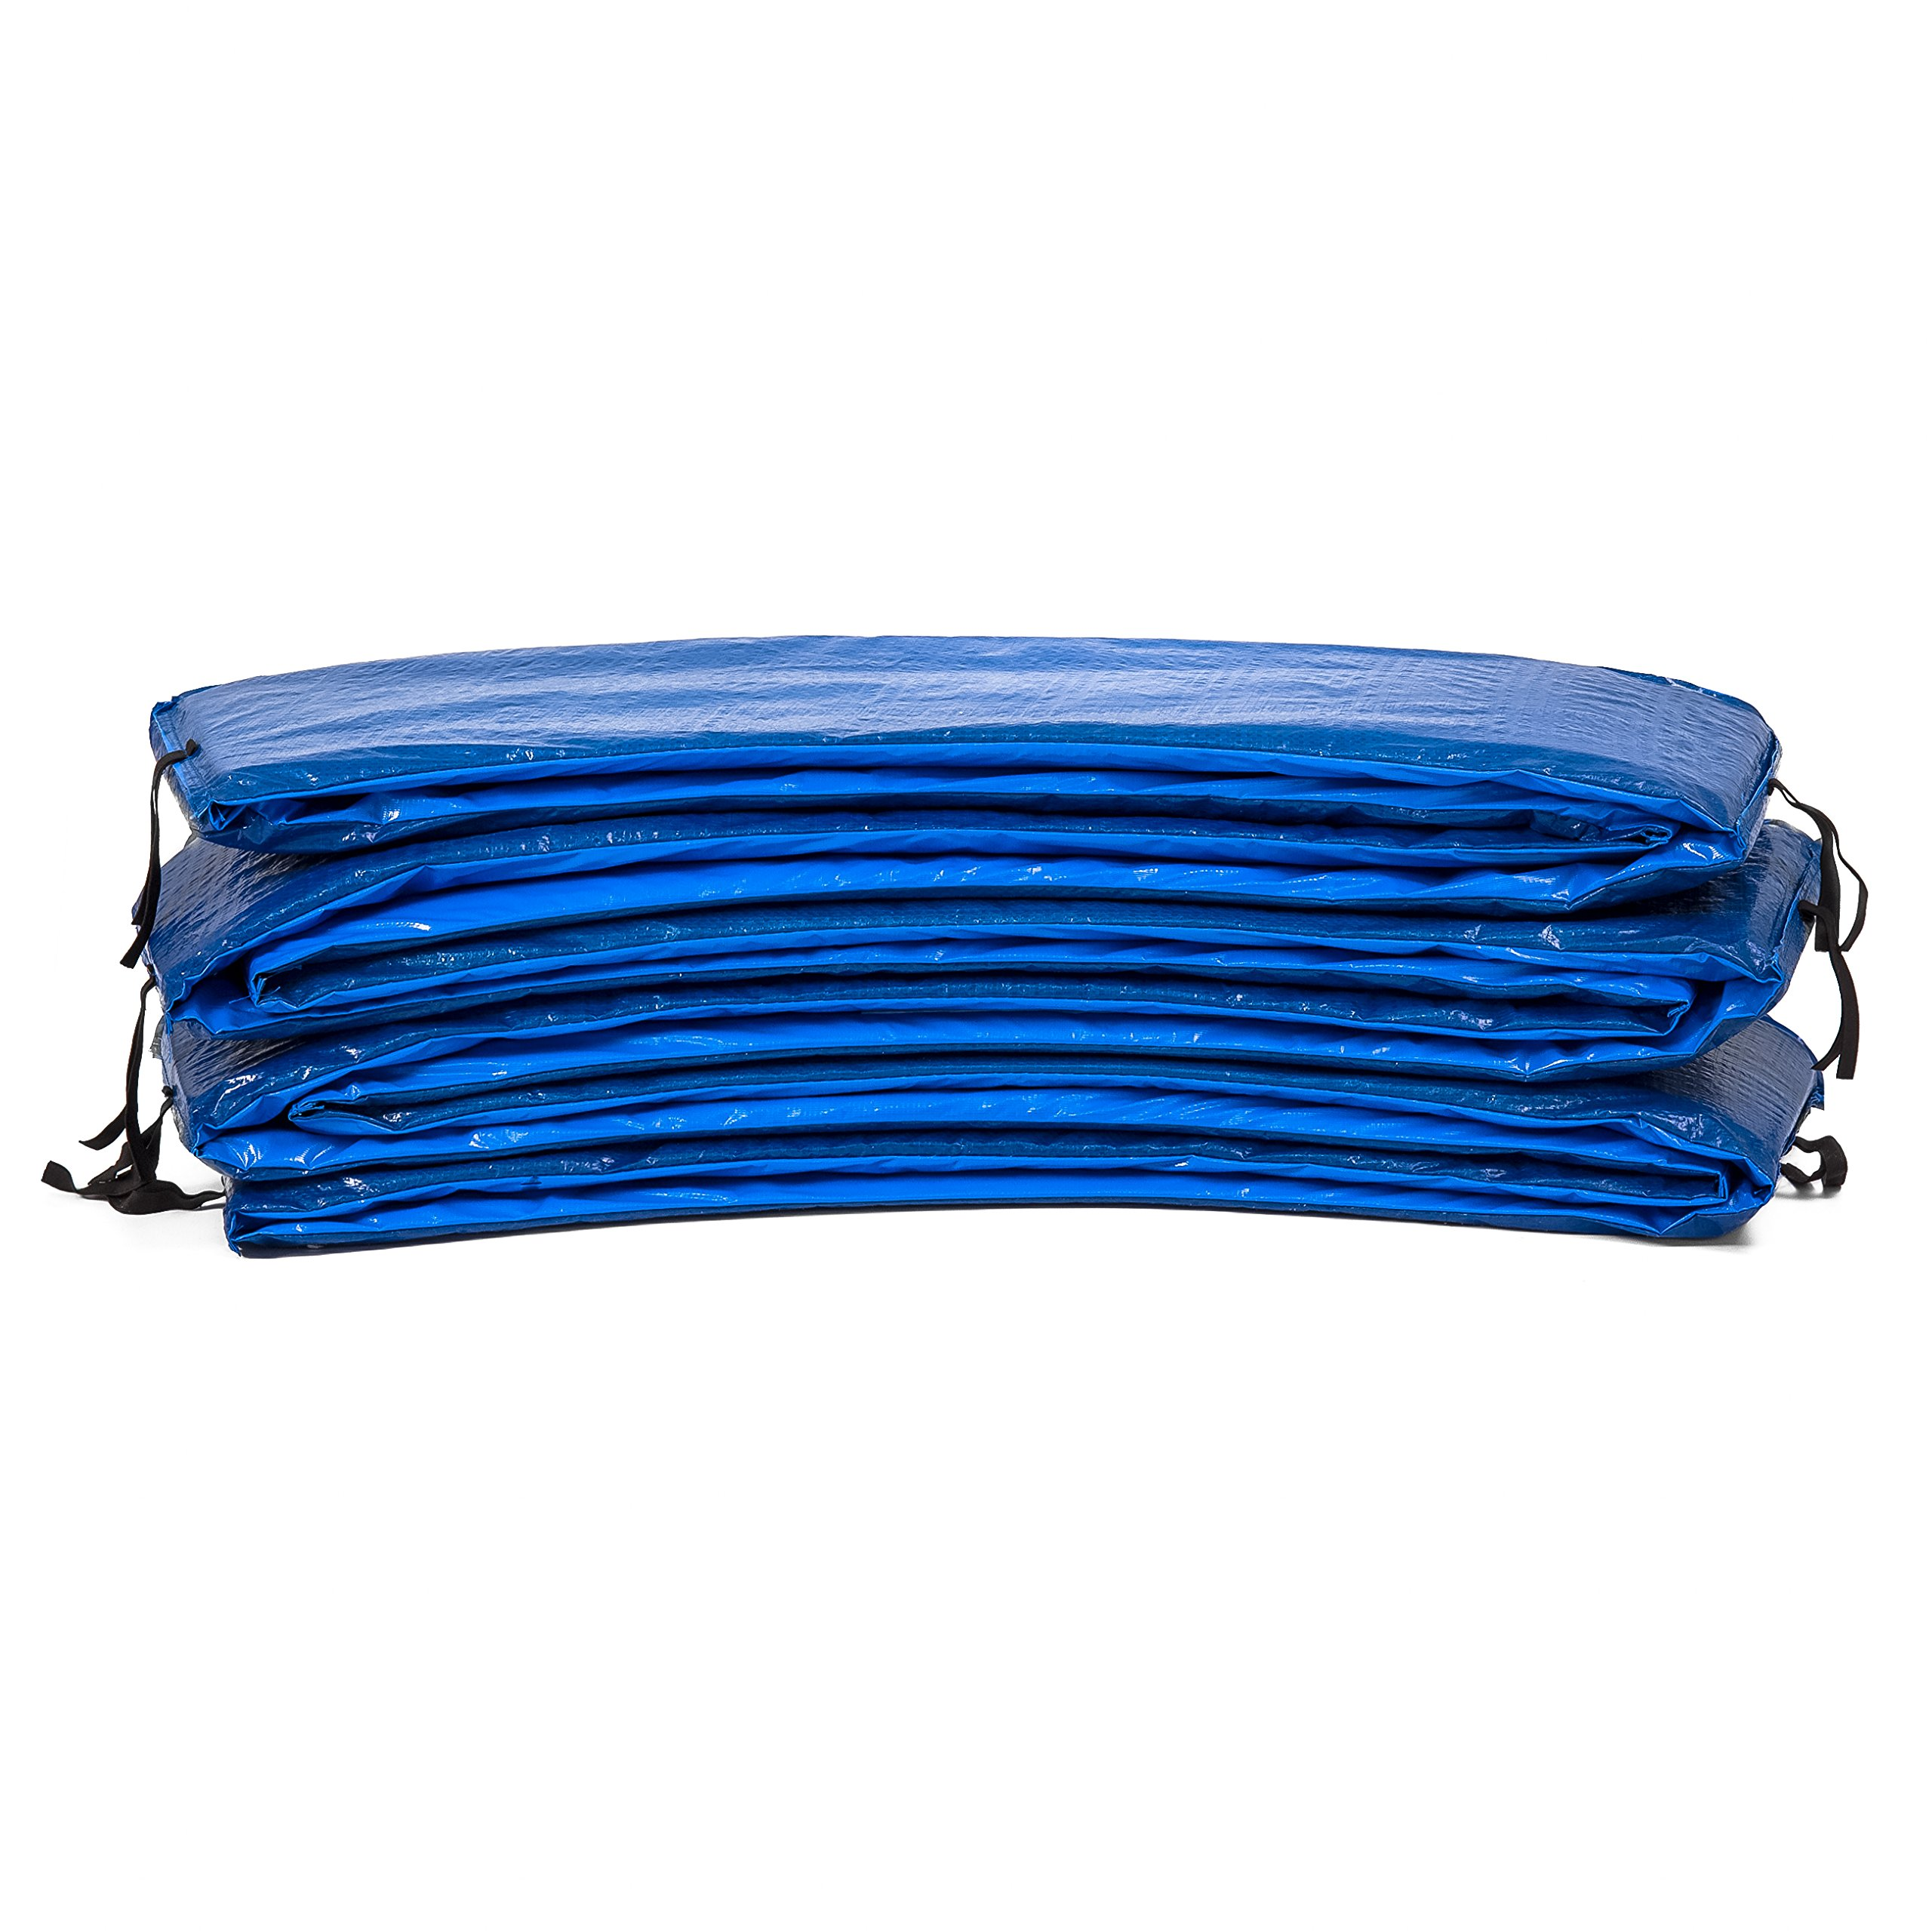 Best Choice Products 12ft Trampoline Safety Pad Spring Cover w/ 21mm Thick Foam Padding - Blue by Best Choice Products (Image #3)